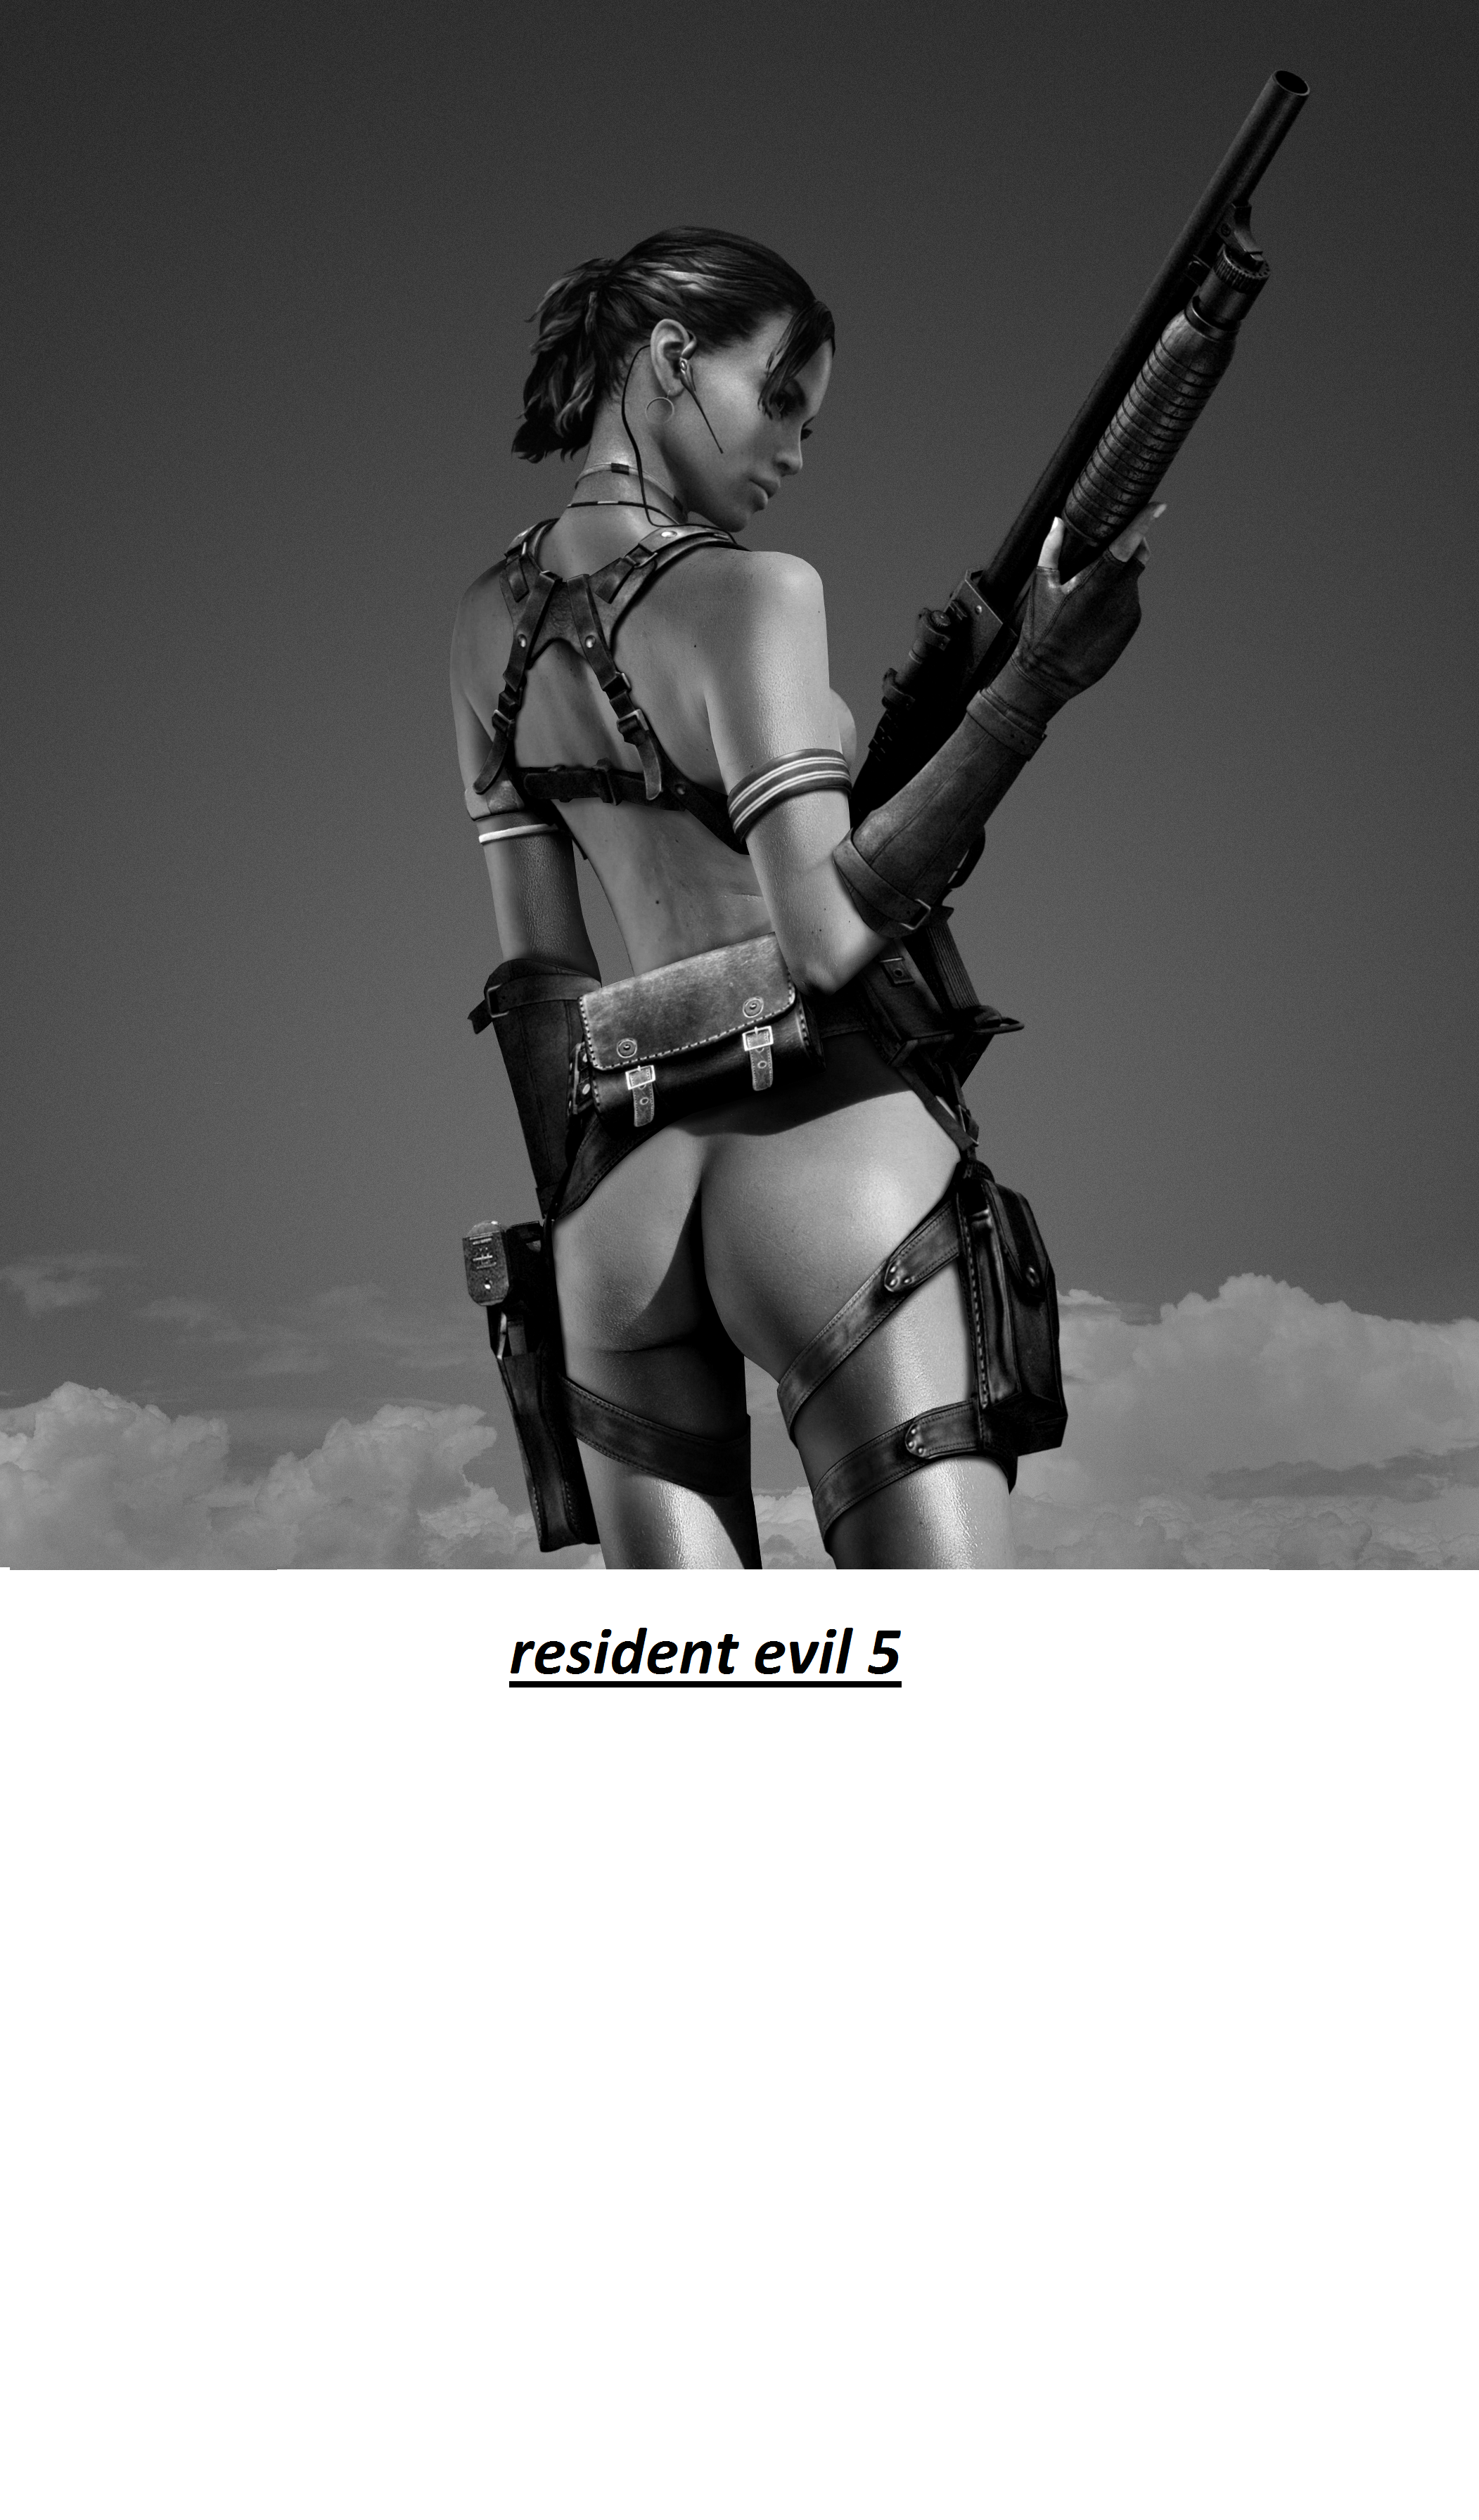 Nude resident evil fan art erotic movie